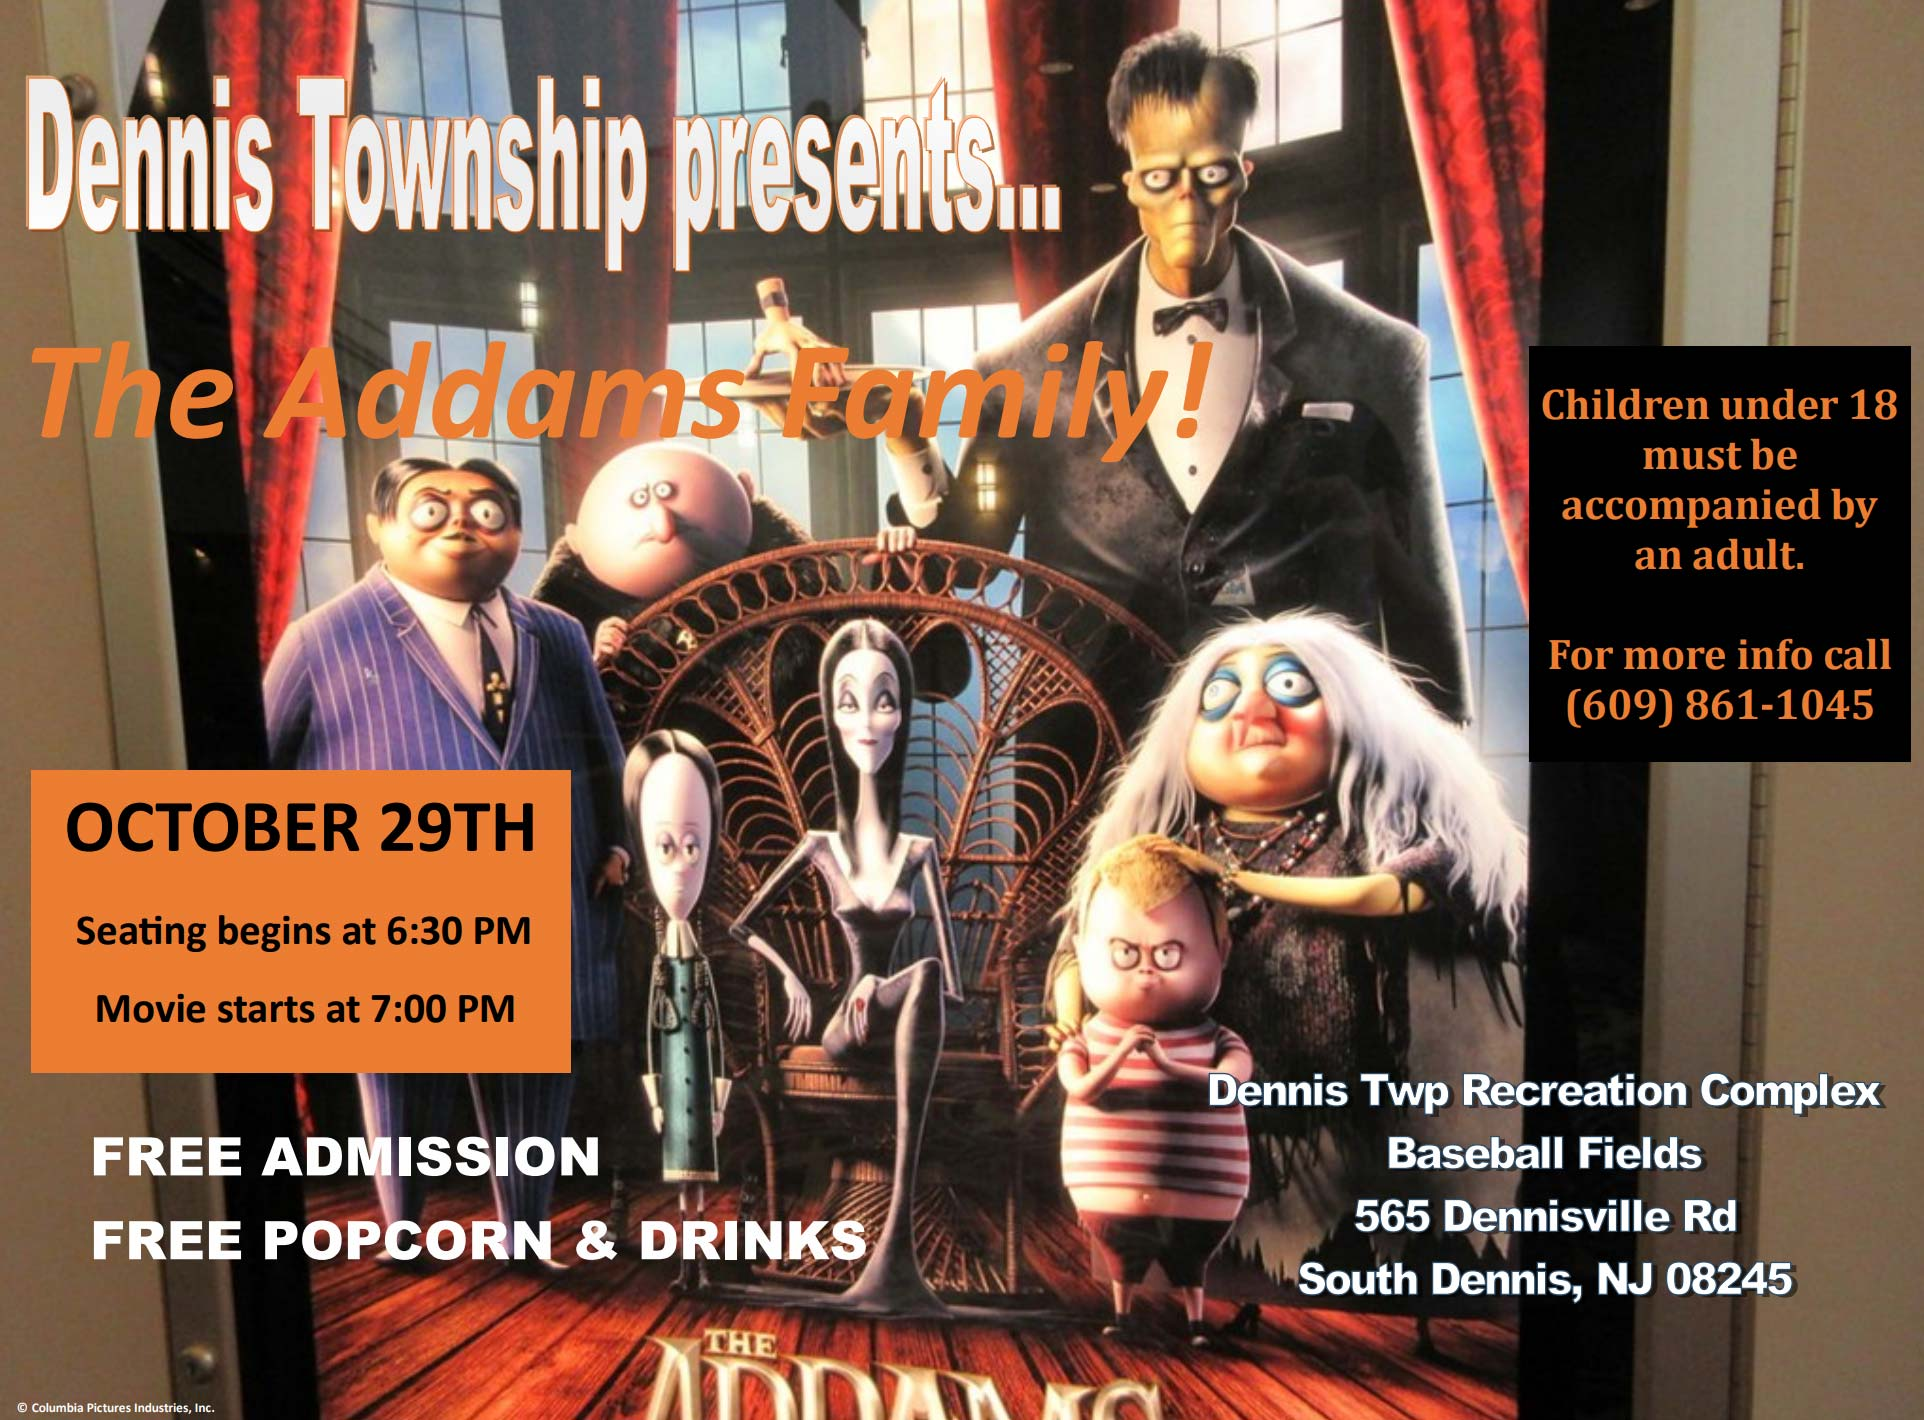 Dennis Township Presents: The Adams Family!